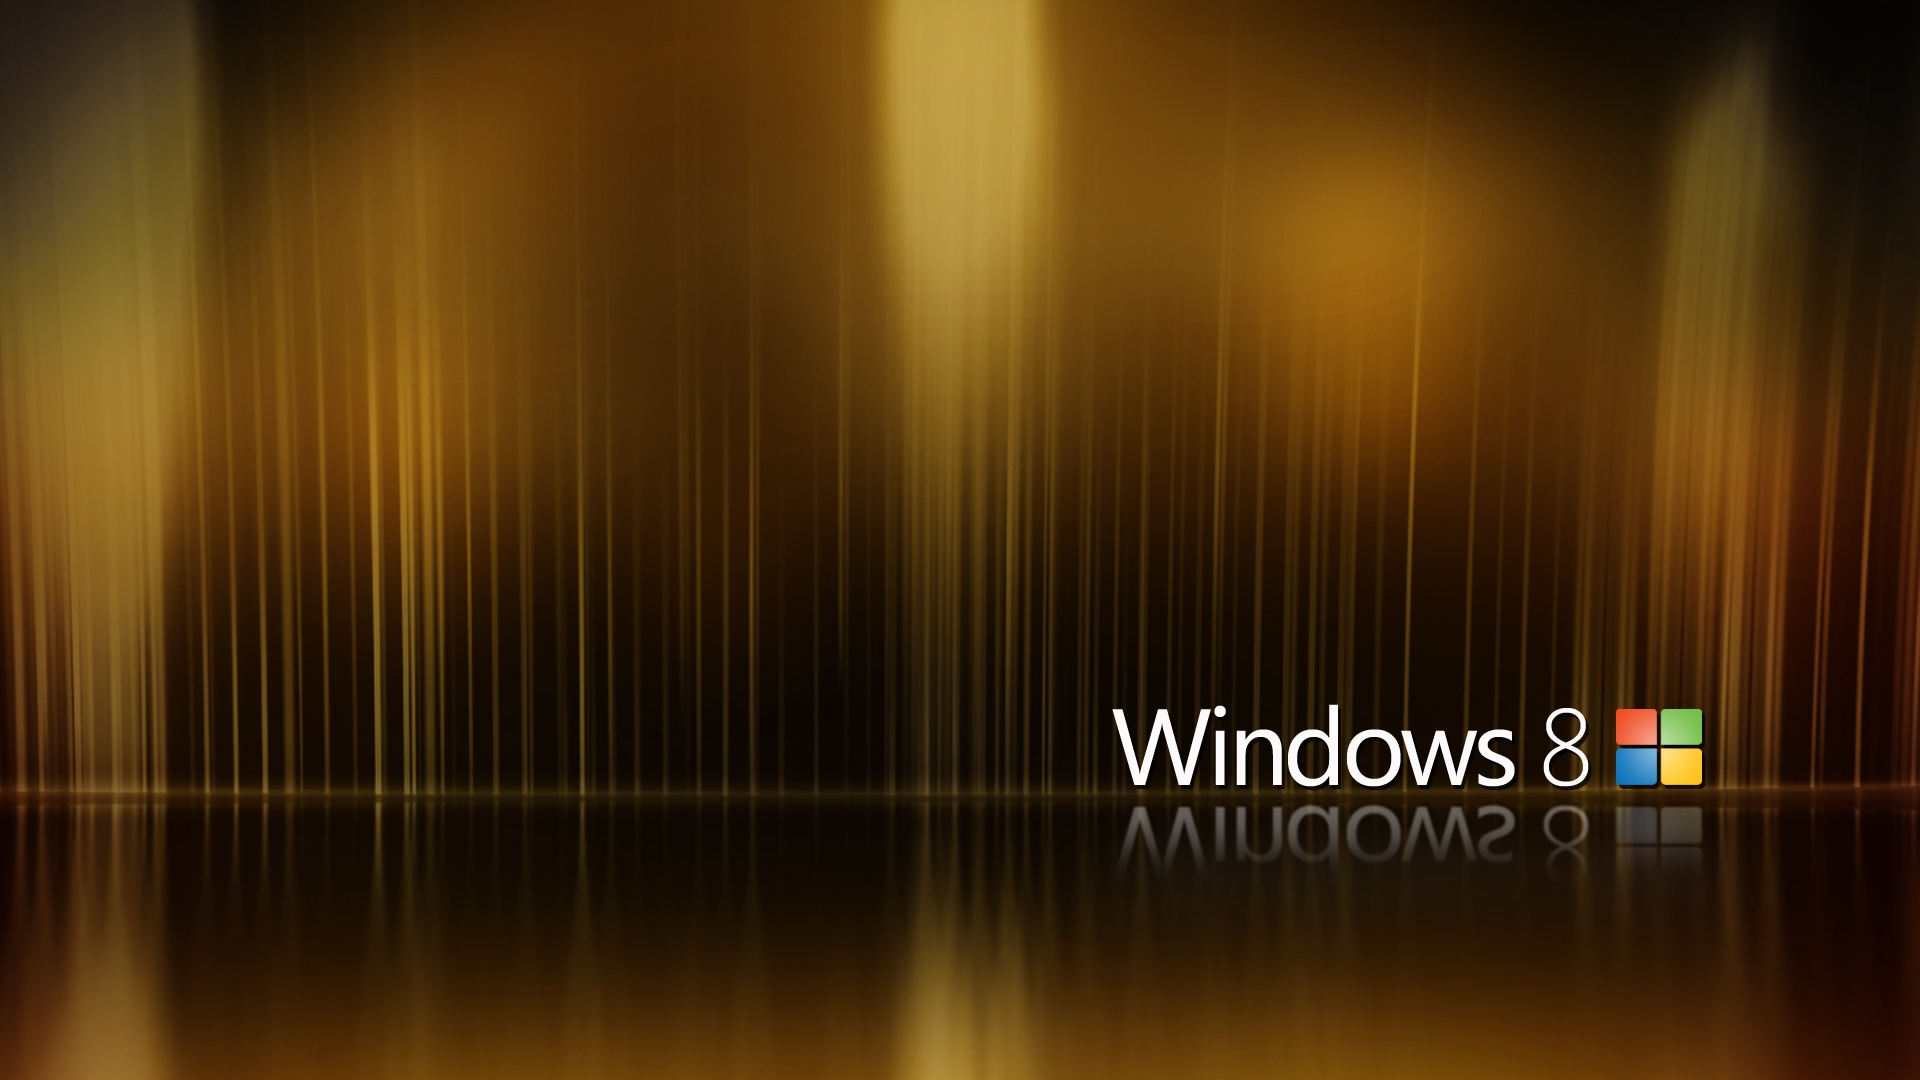 1920x1080 Windows 8 Desktop PC And Mac Wallpaper